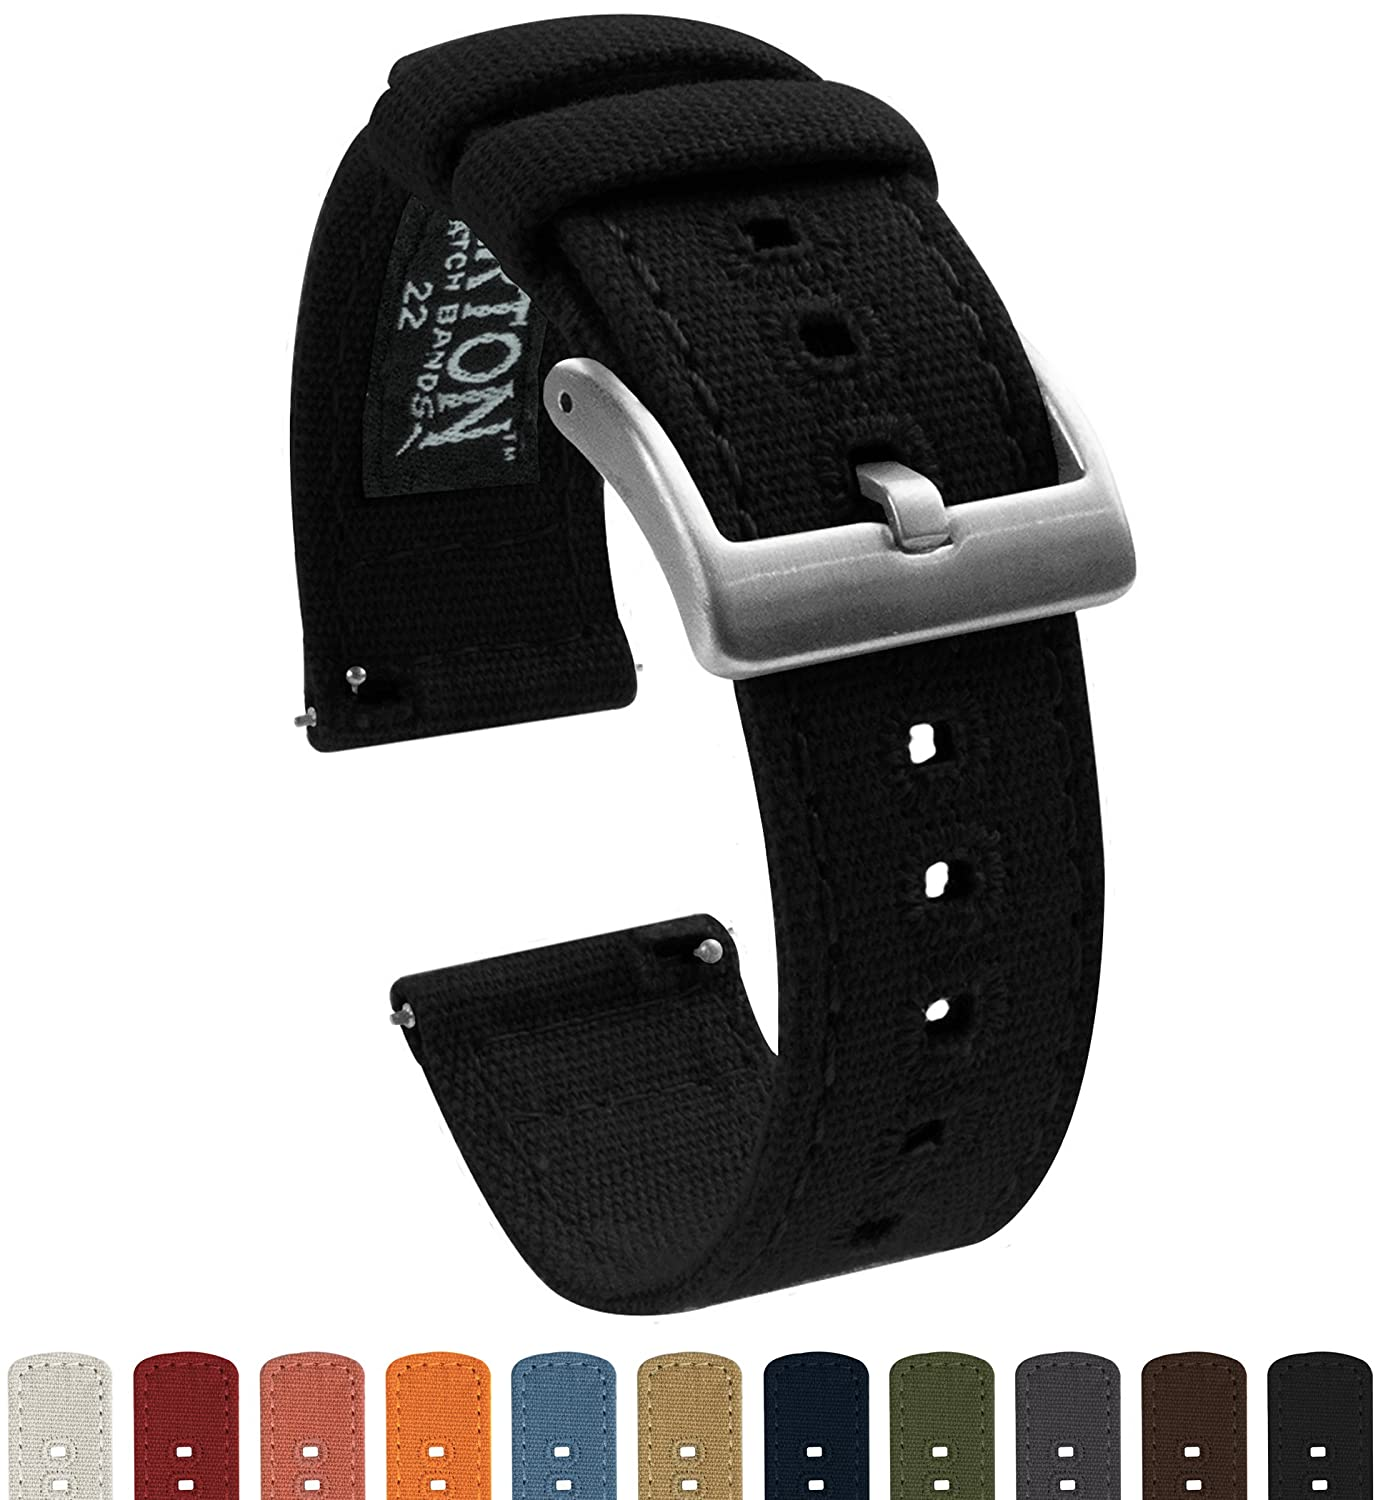 8ba8805d520 Barton Canvas Quick Release Watch Band Straps - Choose Color   Width -  18mm